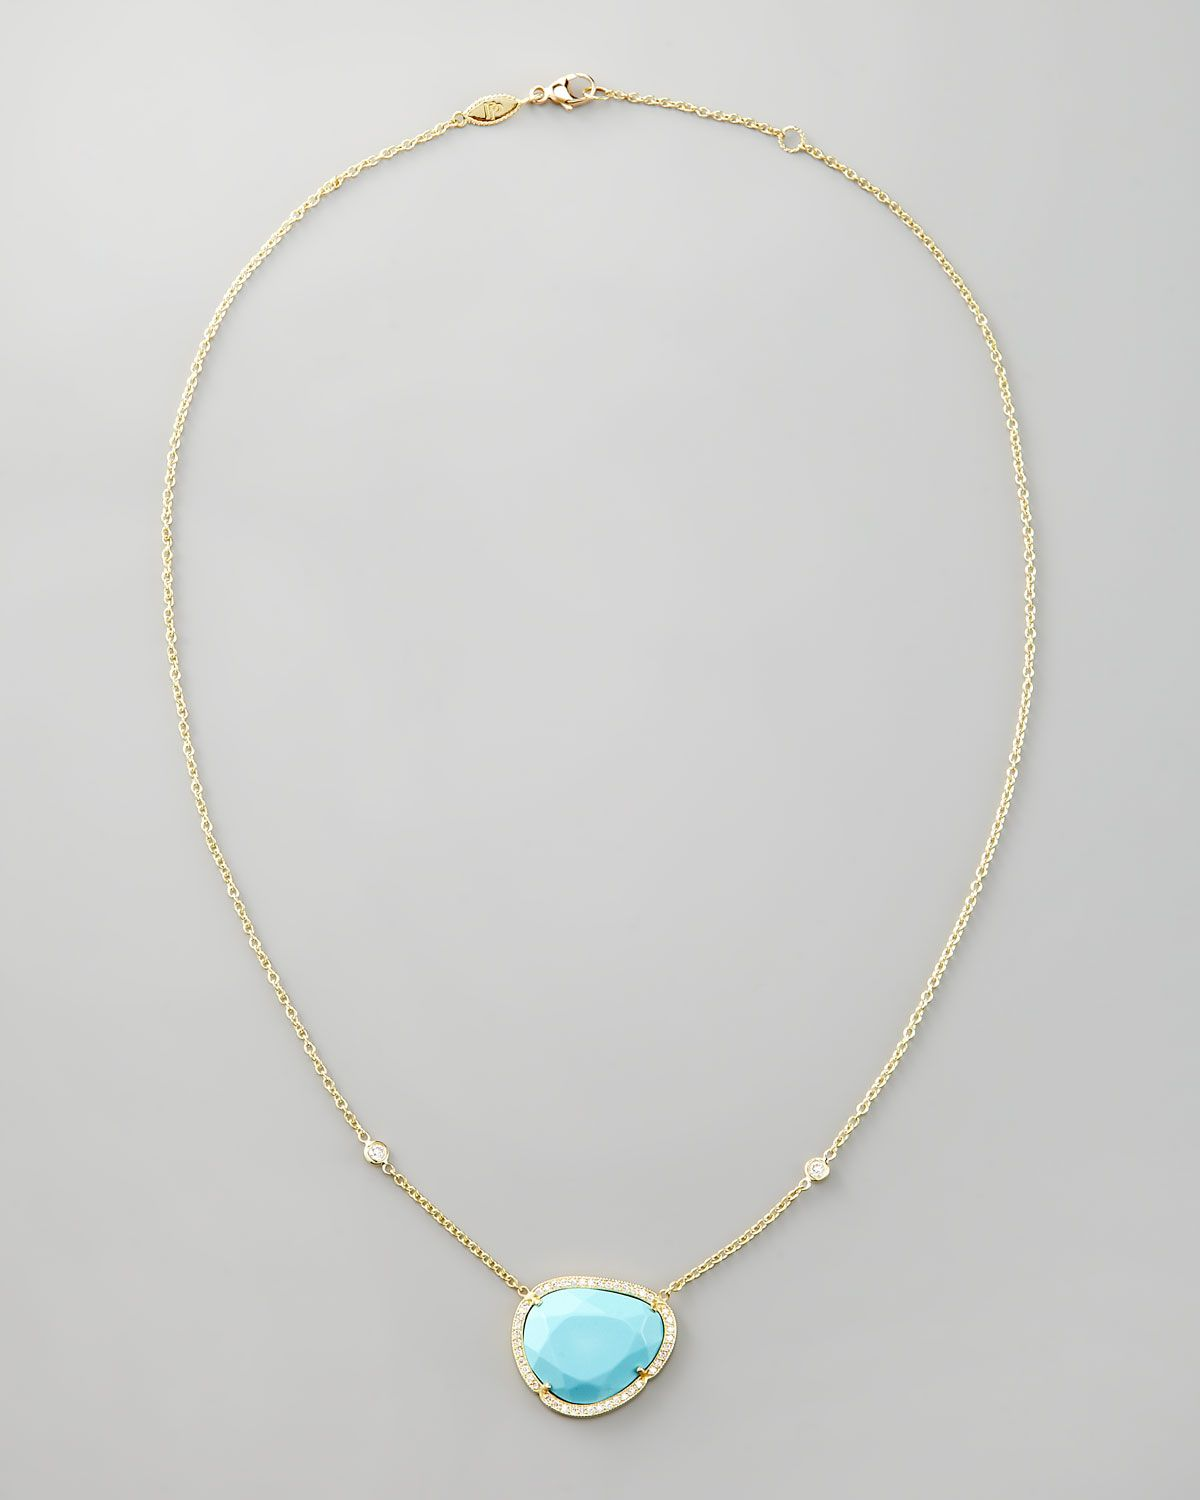 Penny preville diamond trimmed turquoise pendant necklace penny preville diamond trimmed turquoise pendant necklace aloadofball Choice Image